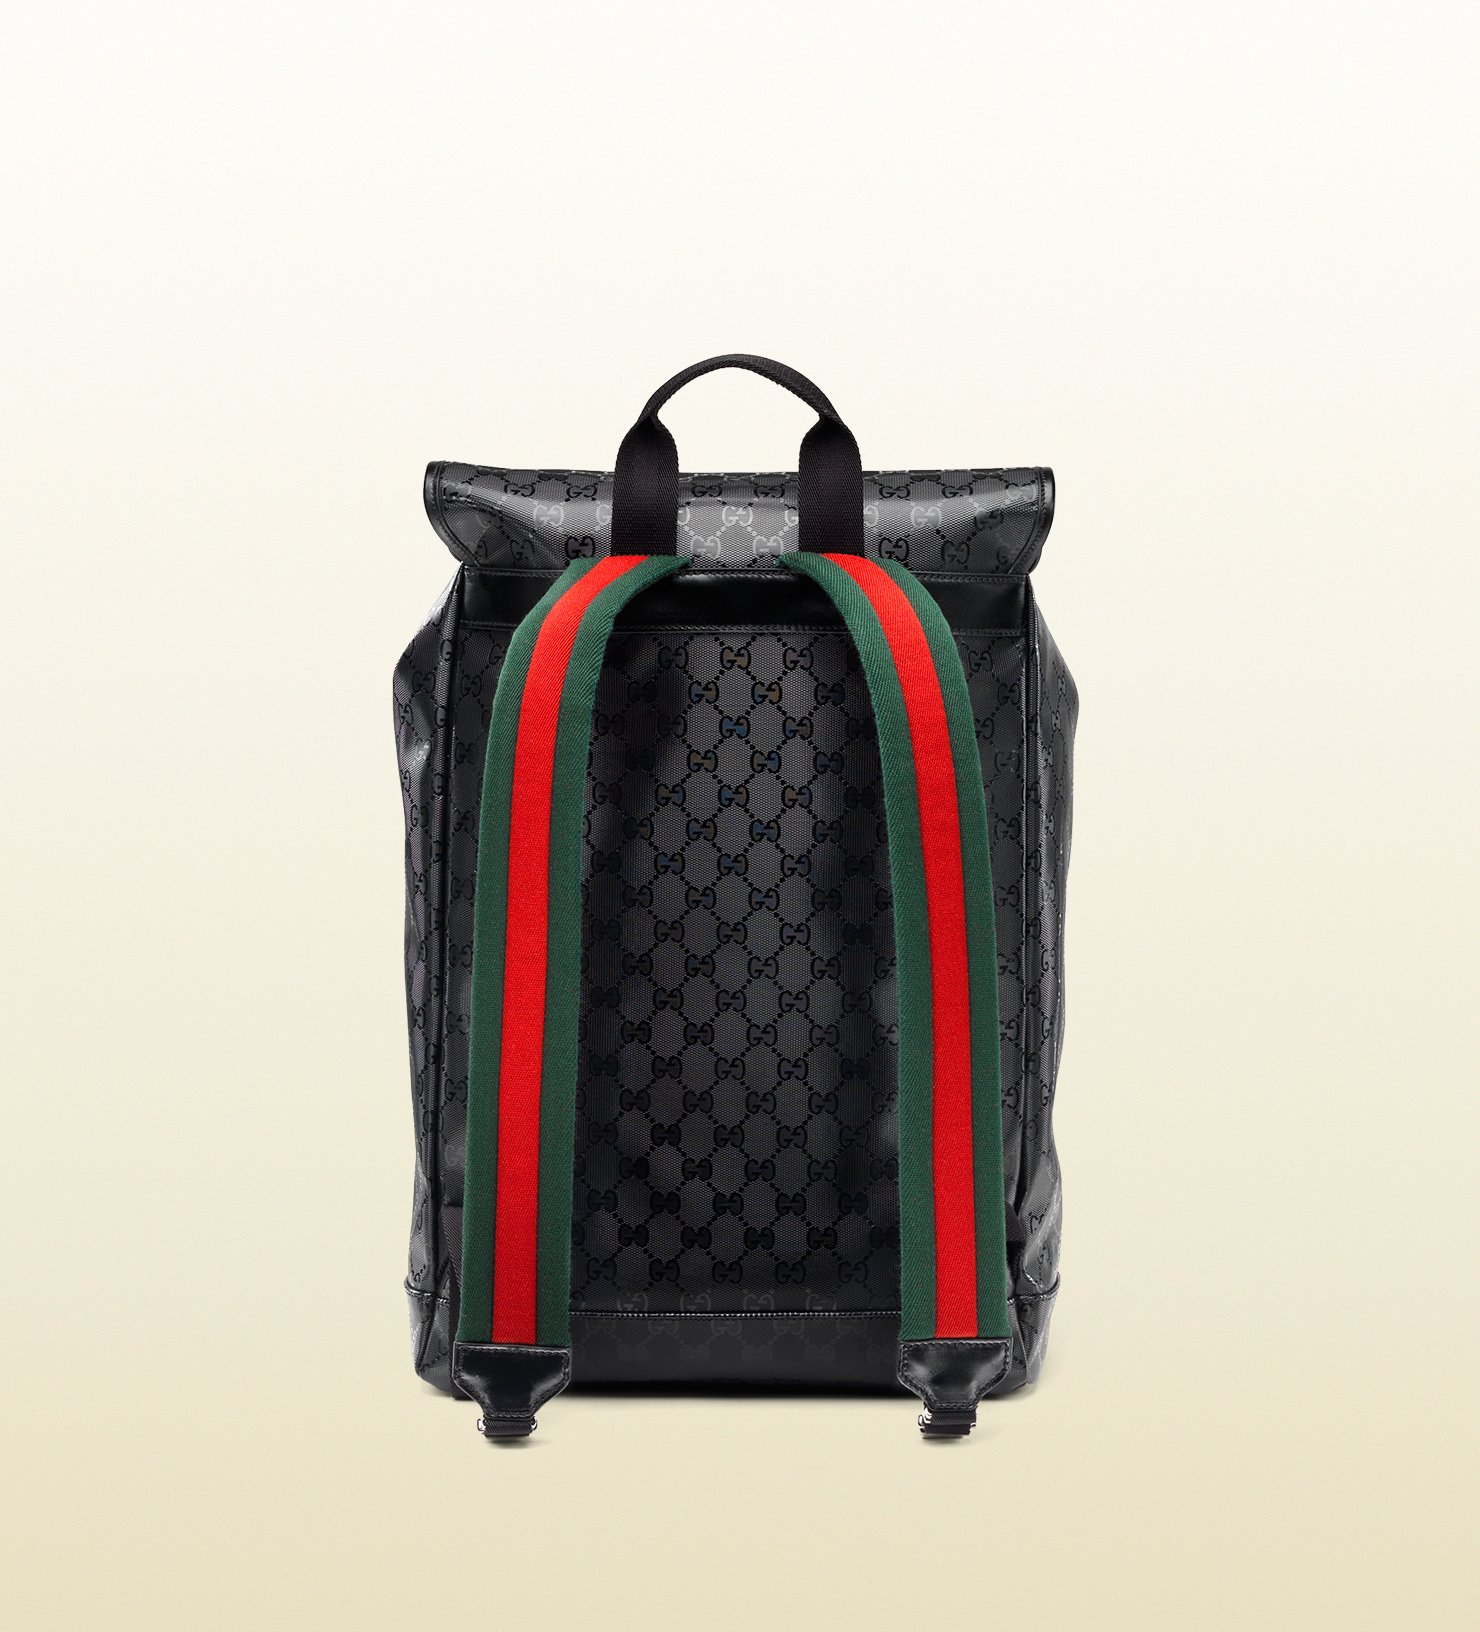 Lyst - Gucci 500 By Gg Imprimé Backpack in Black for Men